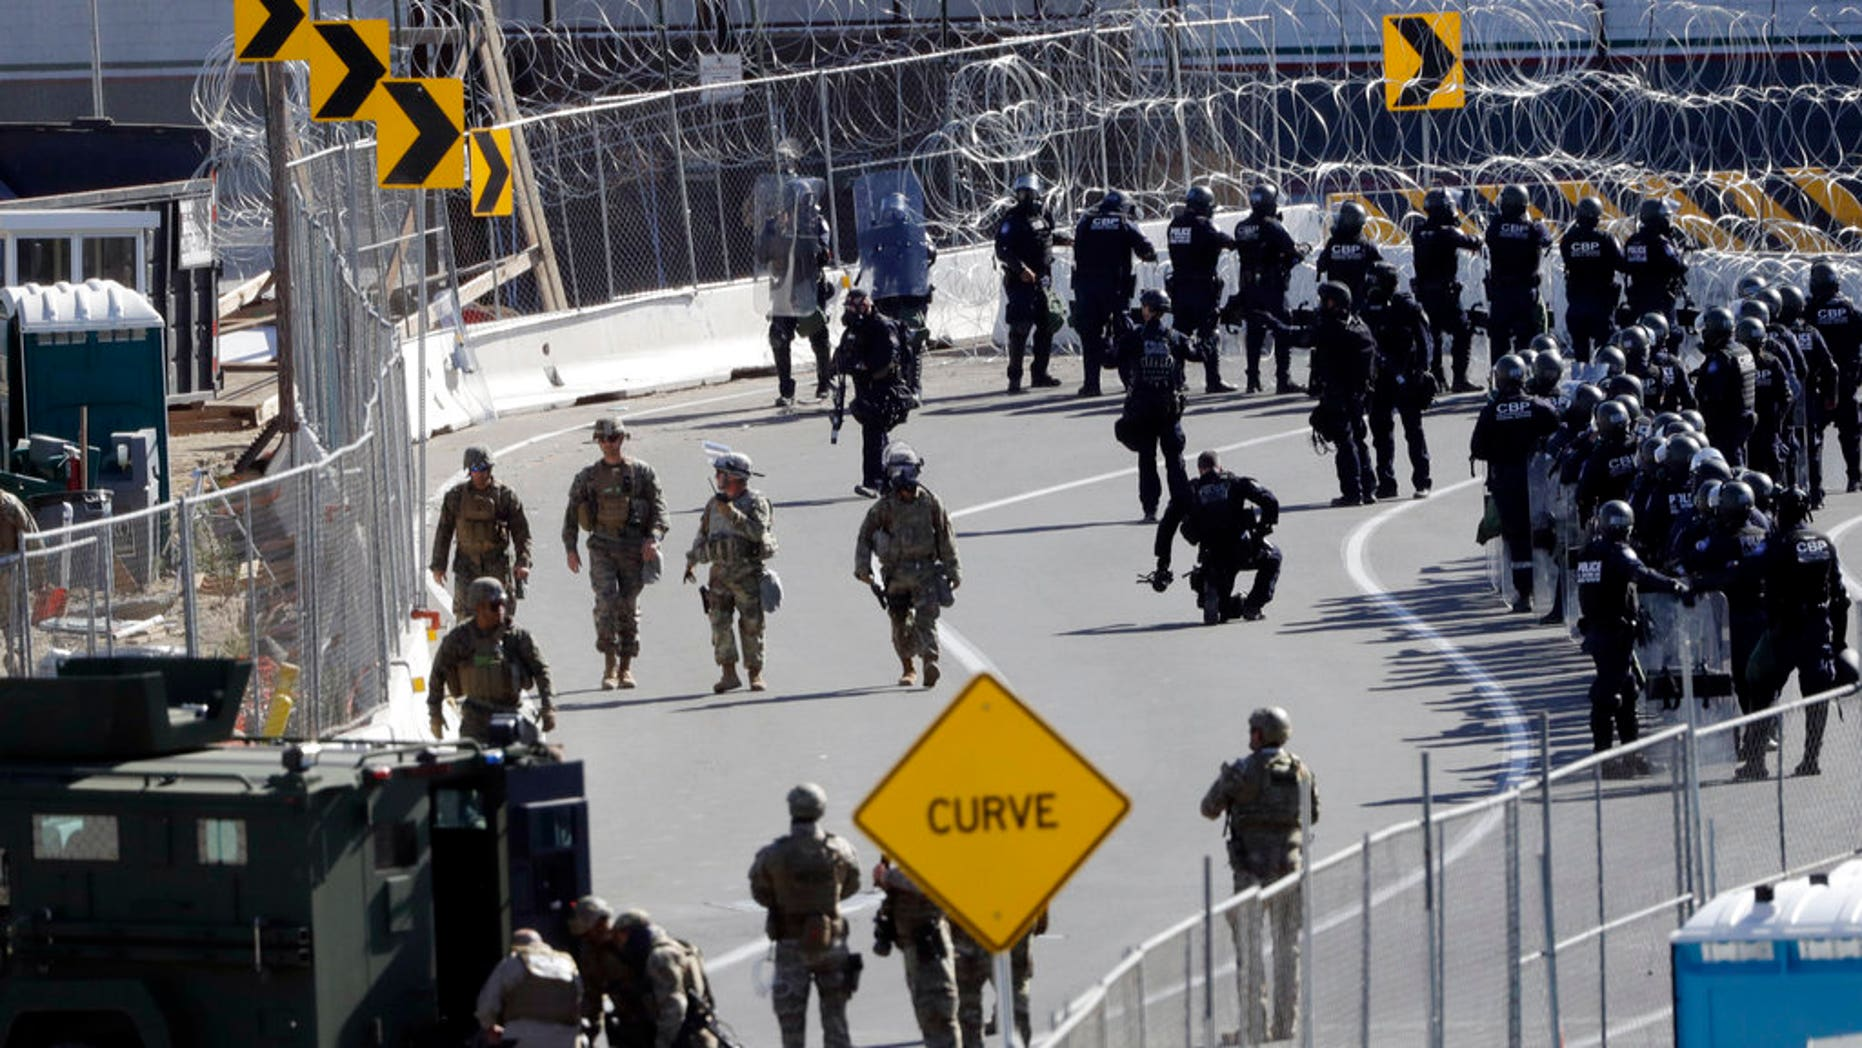 FILE: Military personnel and Customs and Border Protection officers gather along the southbound lanes of the San Ysidro port of entry in San Diego.